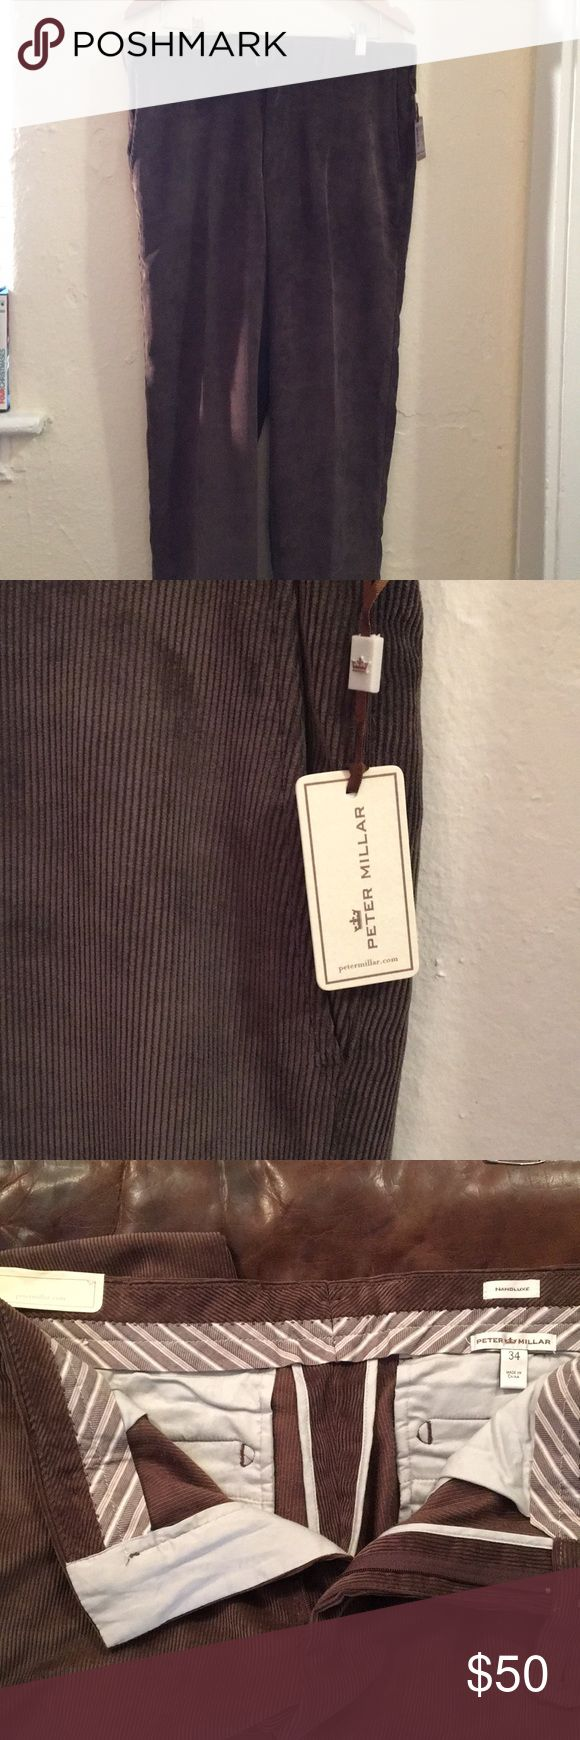 Peter Millar Mens Pants NEW W TAGS! Peter Millar Mens Corduroy Pants  Color: Chocolate Size: Waist 34 / Length 32  Awesome lightweight pant for the winter!  These pants will go great w a light colored button down or even a with t shirt! Great set of paints that are brand new and never worn! Peter Millar Pants Corduroy